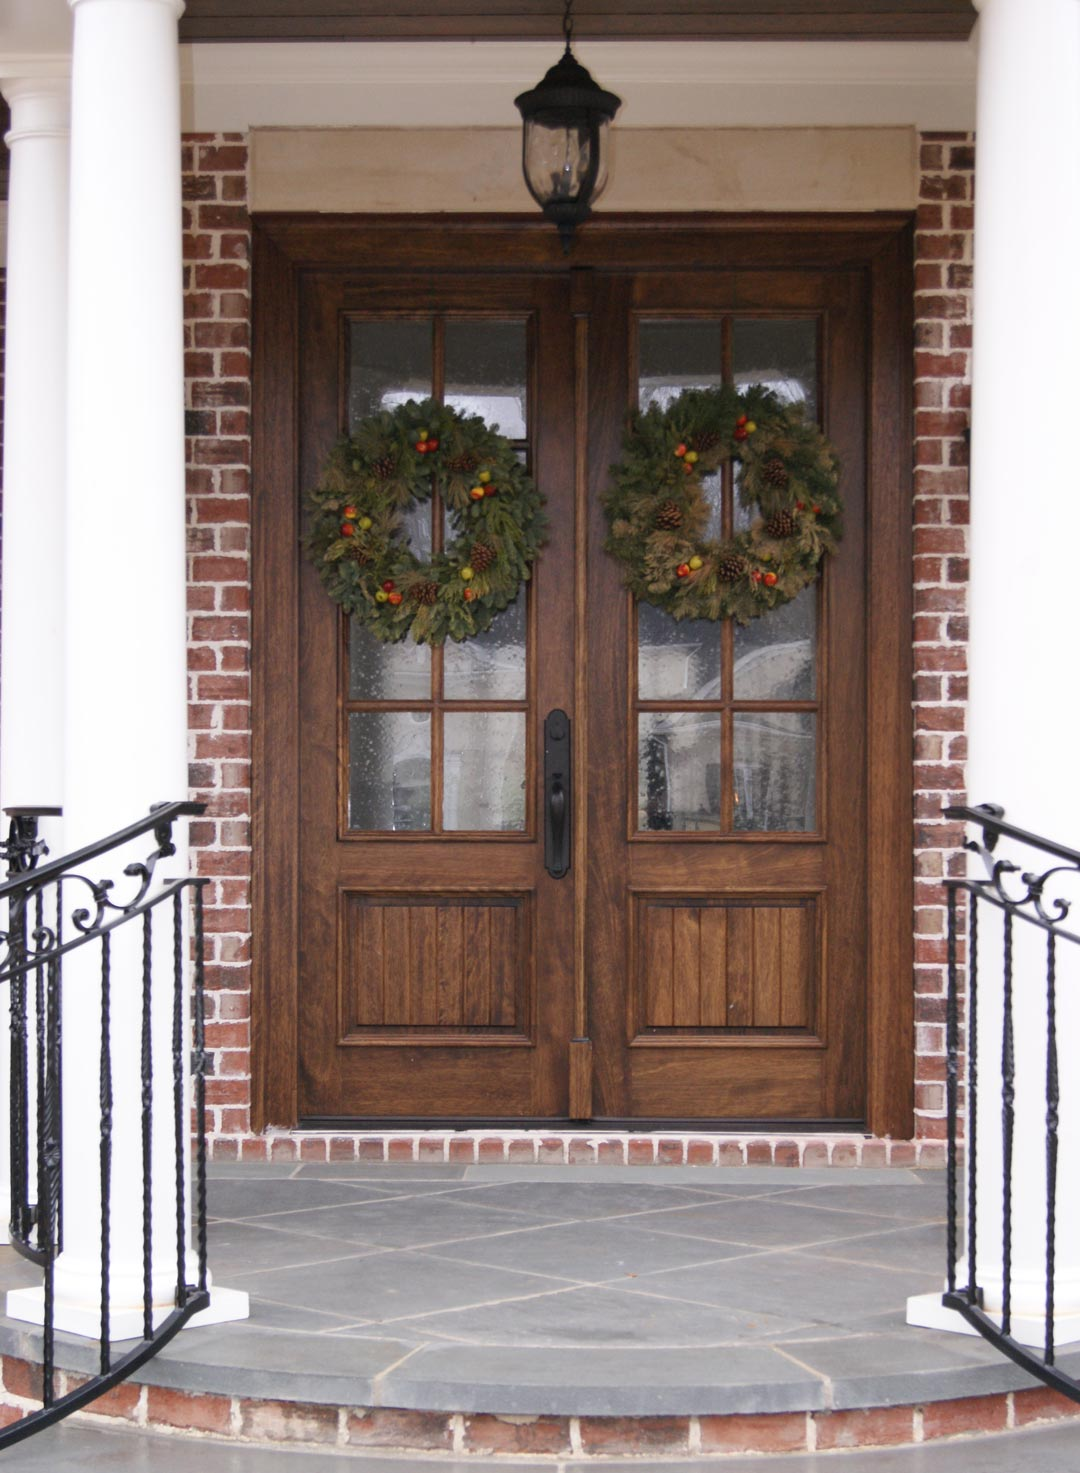 Windows and Doors Design Ideas | Atlanta Home Improvement